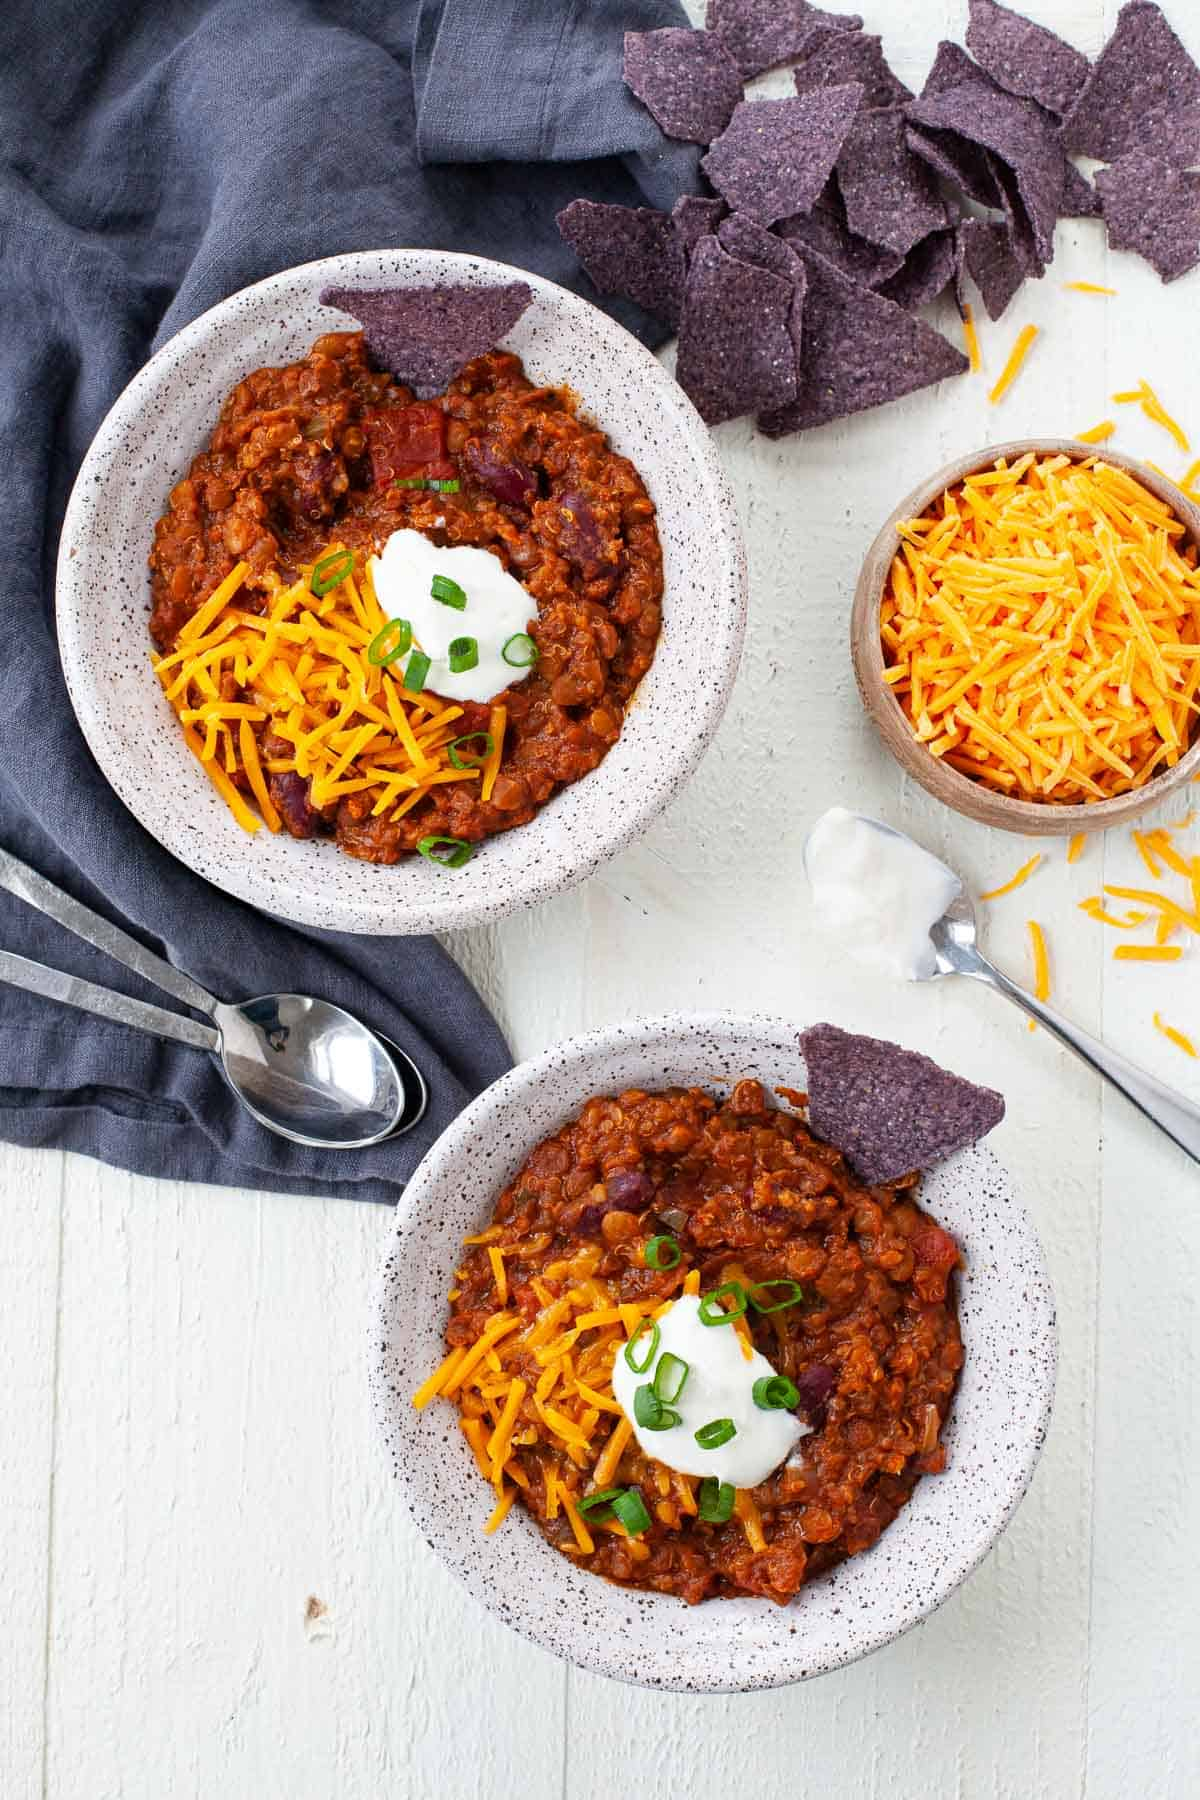 two bowls of vegetarian chili with tortilla chips, cheese, sour cream, scallions and bowl of cheese